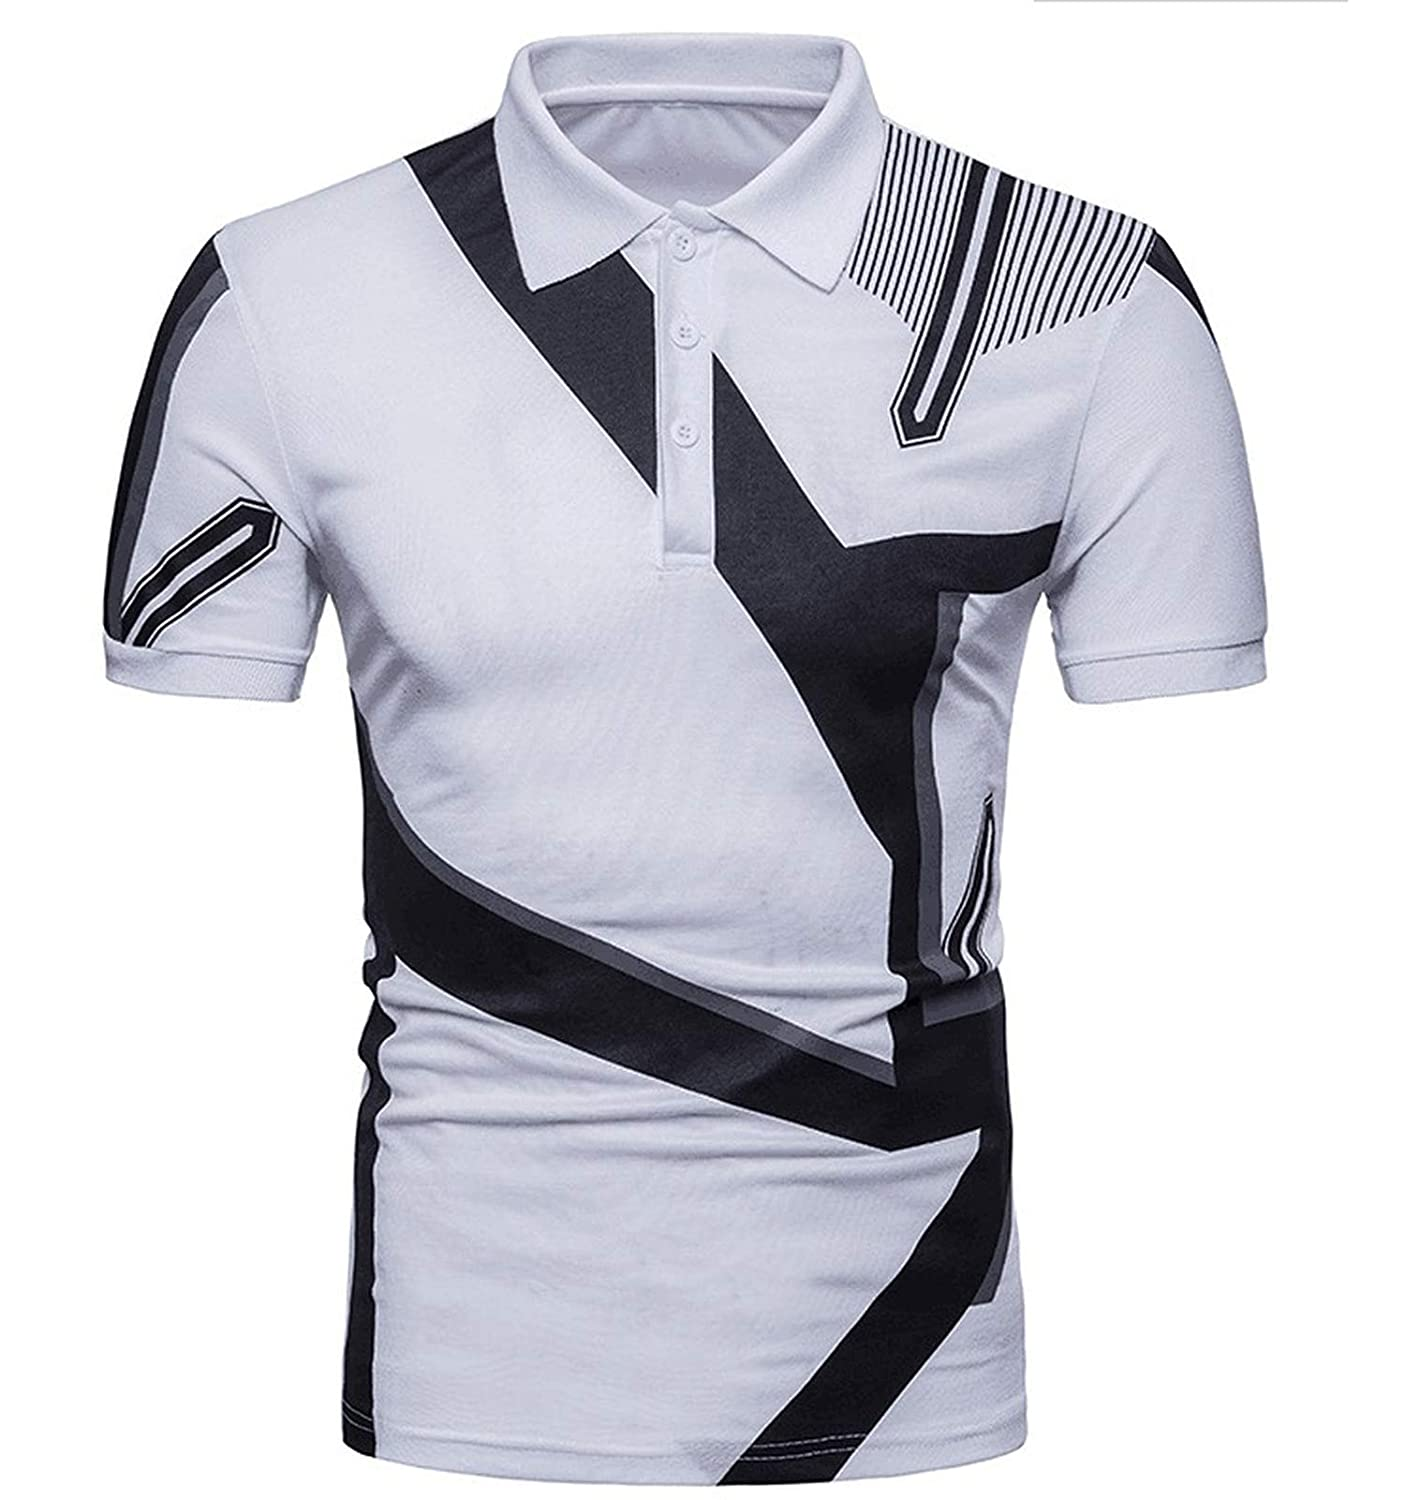 EspTmall Summer New Men Clothing 2019 Man Polo Casual Printed Polo Shirts for Men College Street Wear